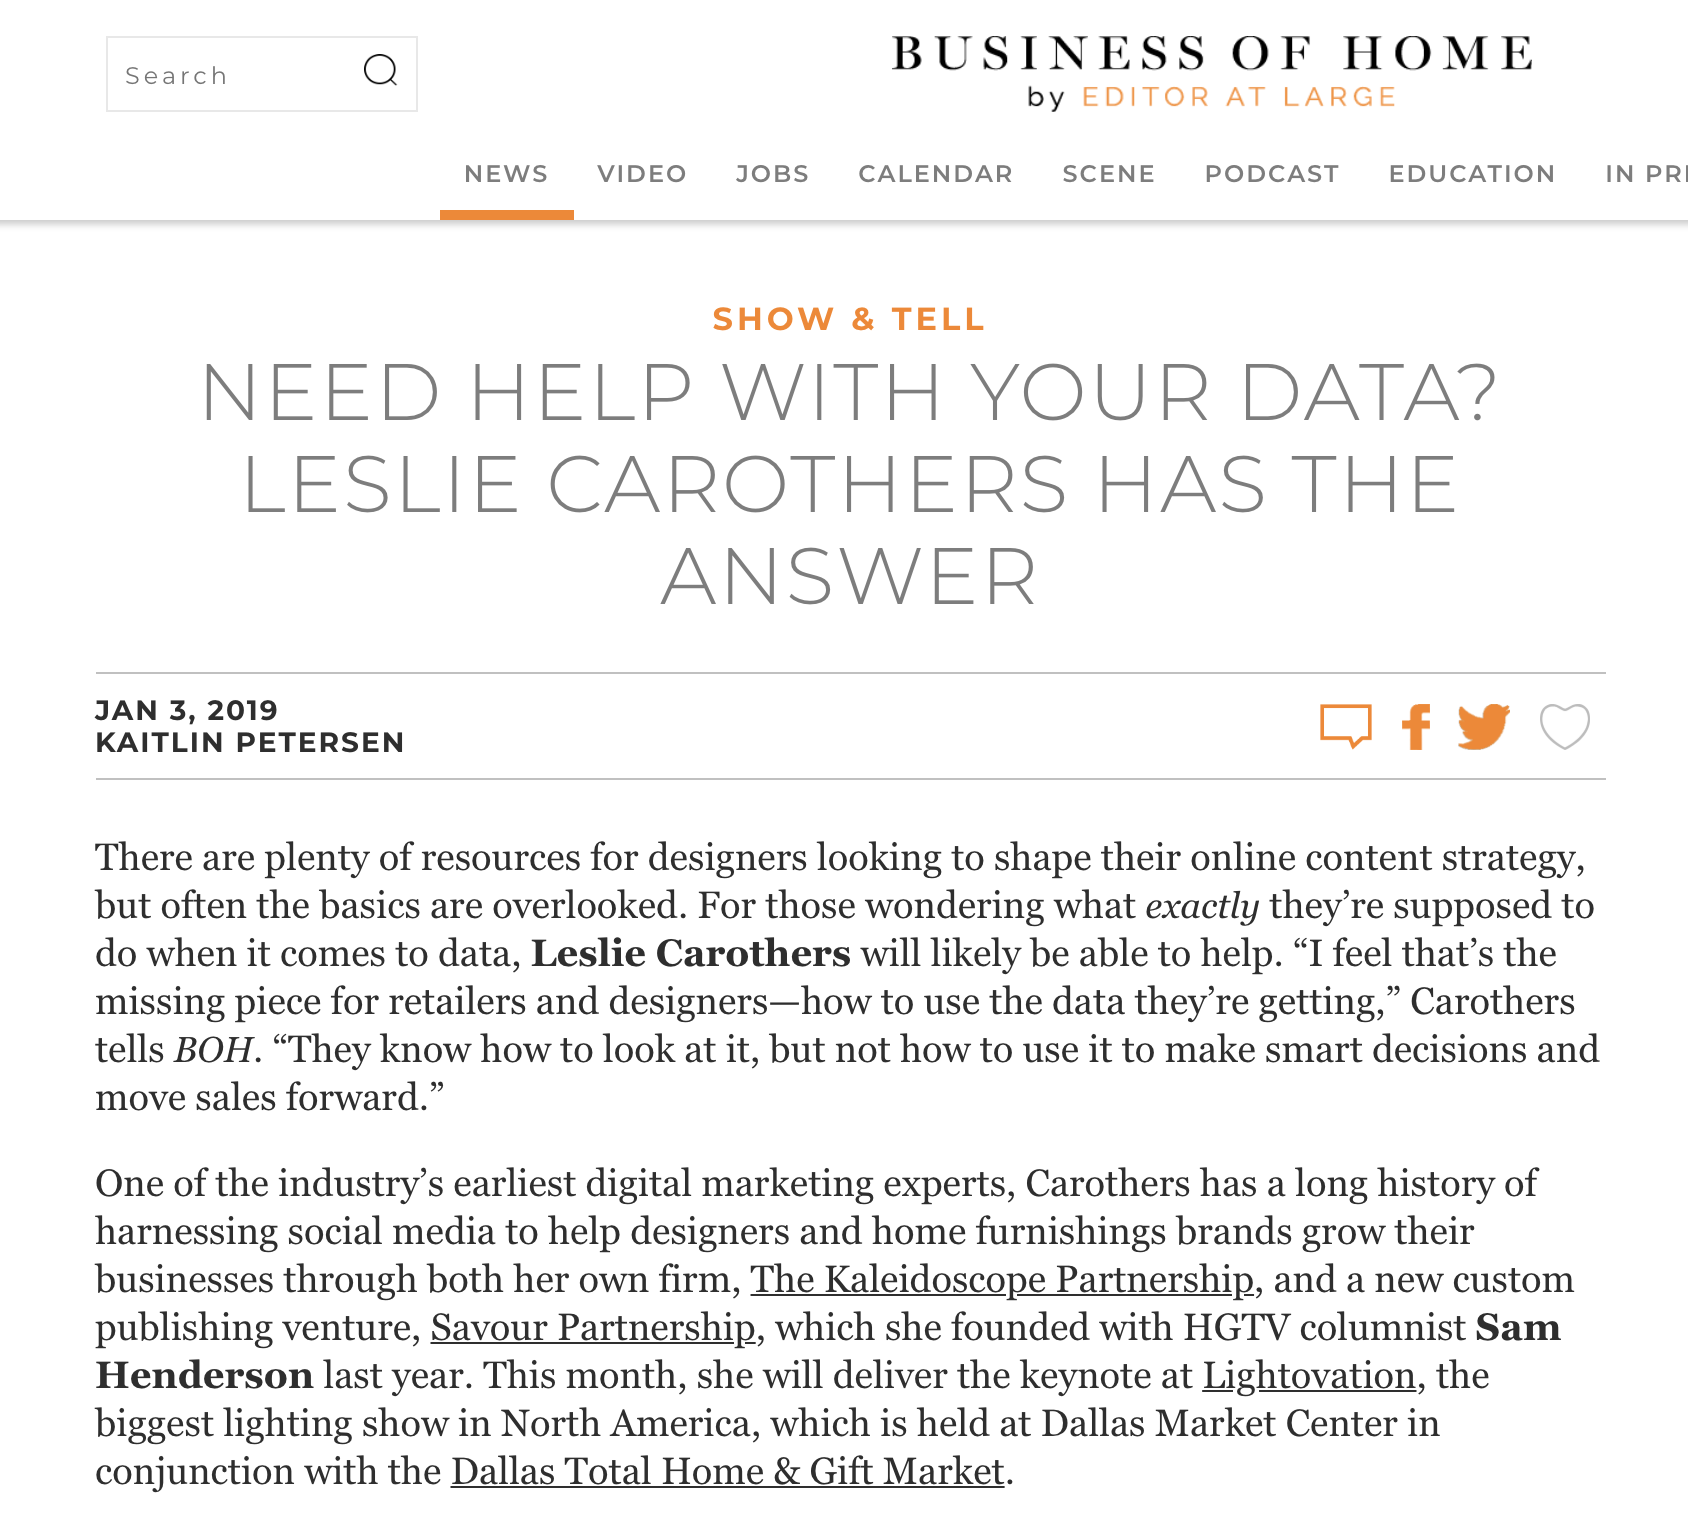 Leslie Carothers interviewed on Business of Home/Editor At Large